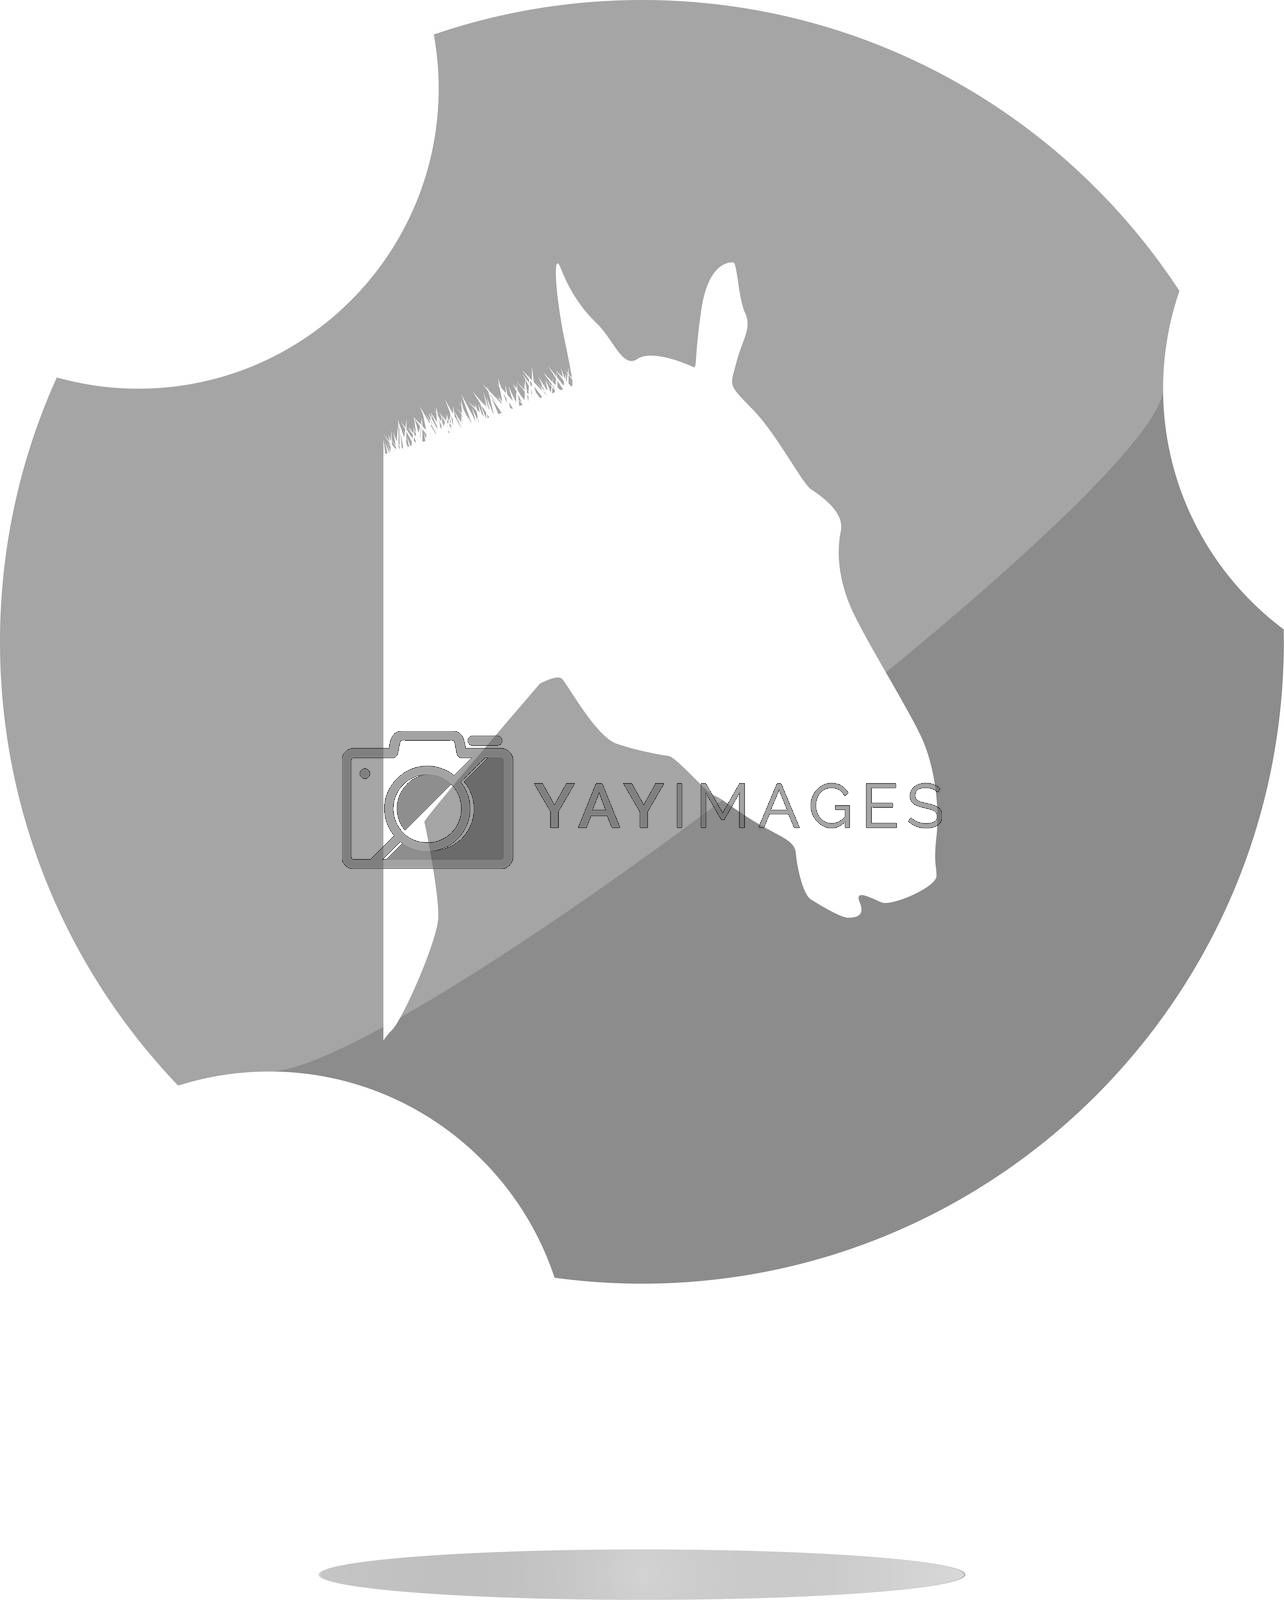 horse sign button, web app icon . Flat sign isolated on white background